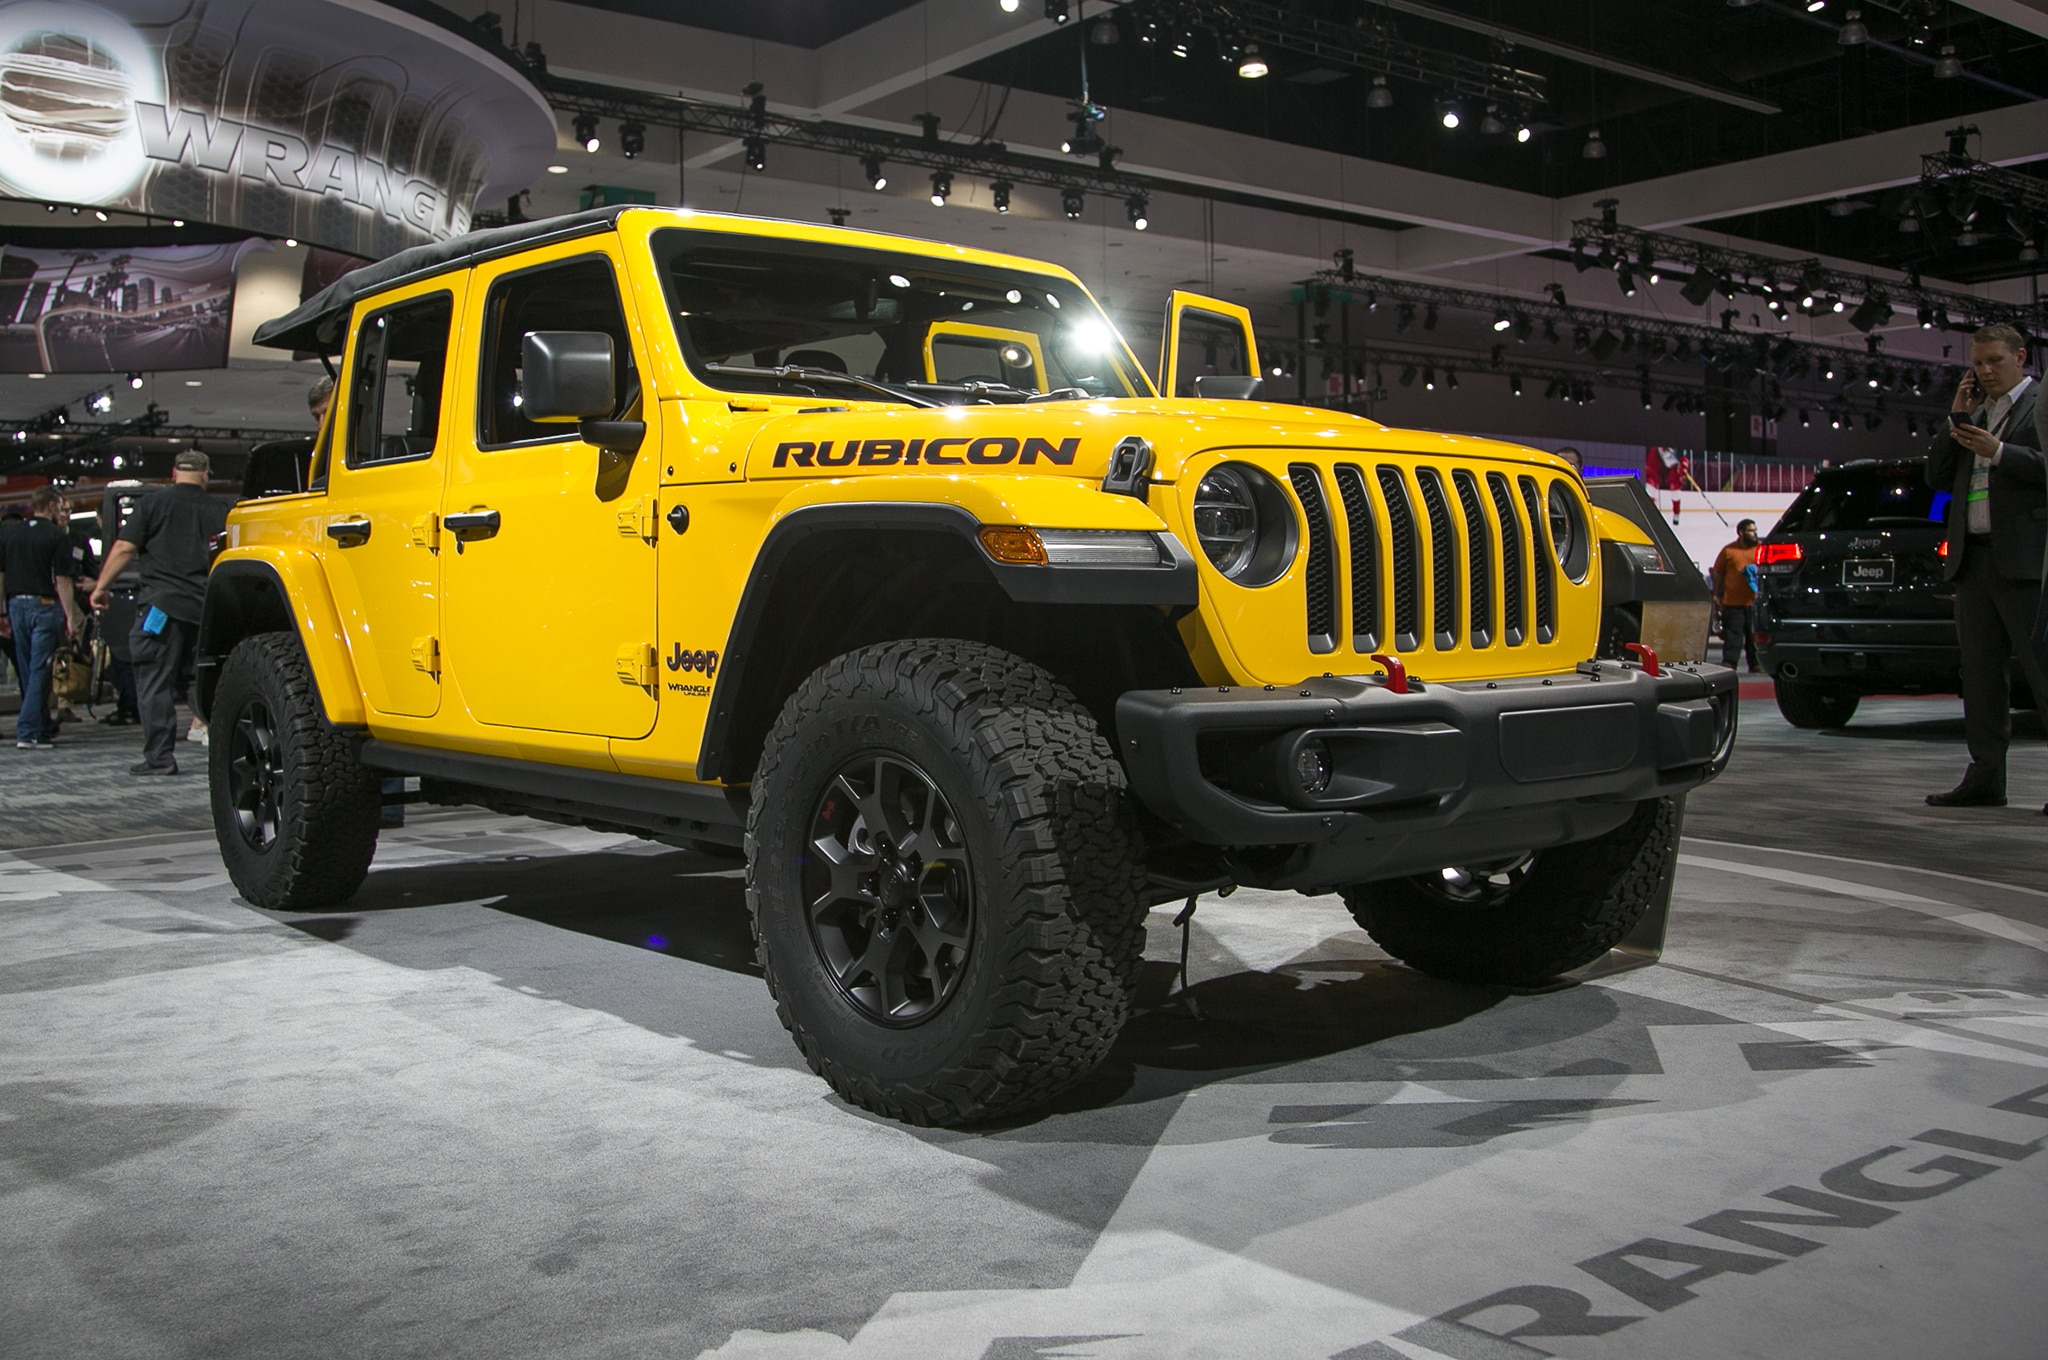 Jeep Wrangler a plug-in hybrid from 2020